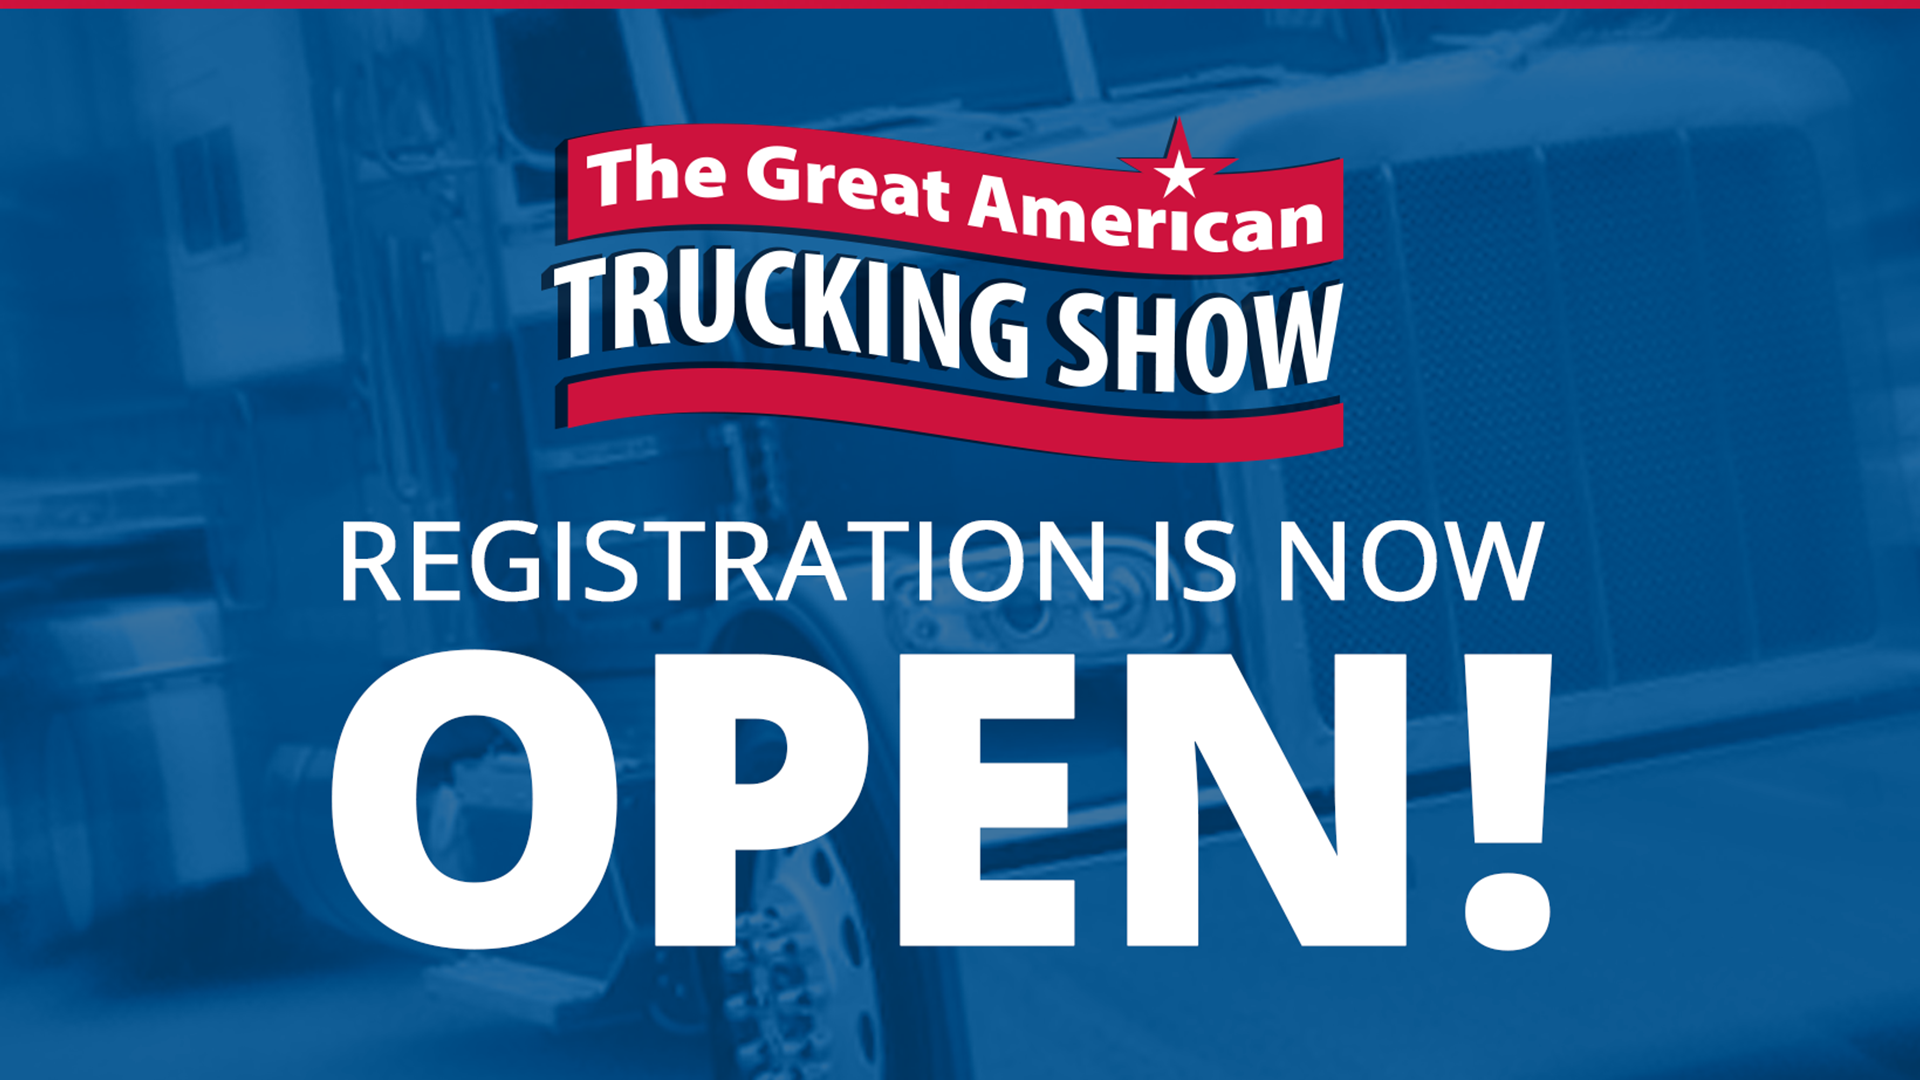 ATBS to offer free seminars for owner-operators at Great American Trucking Show